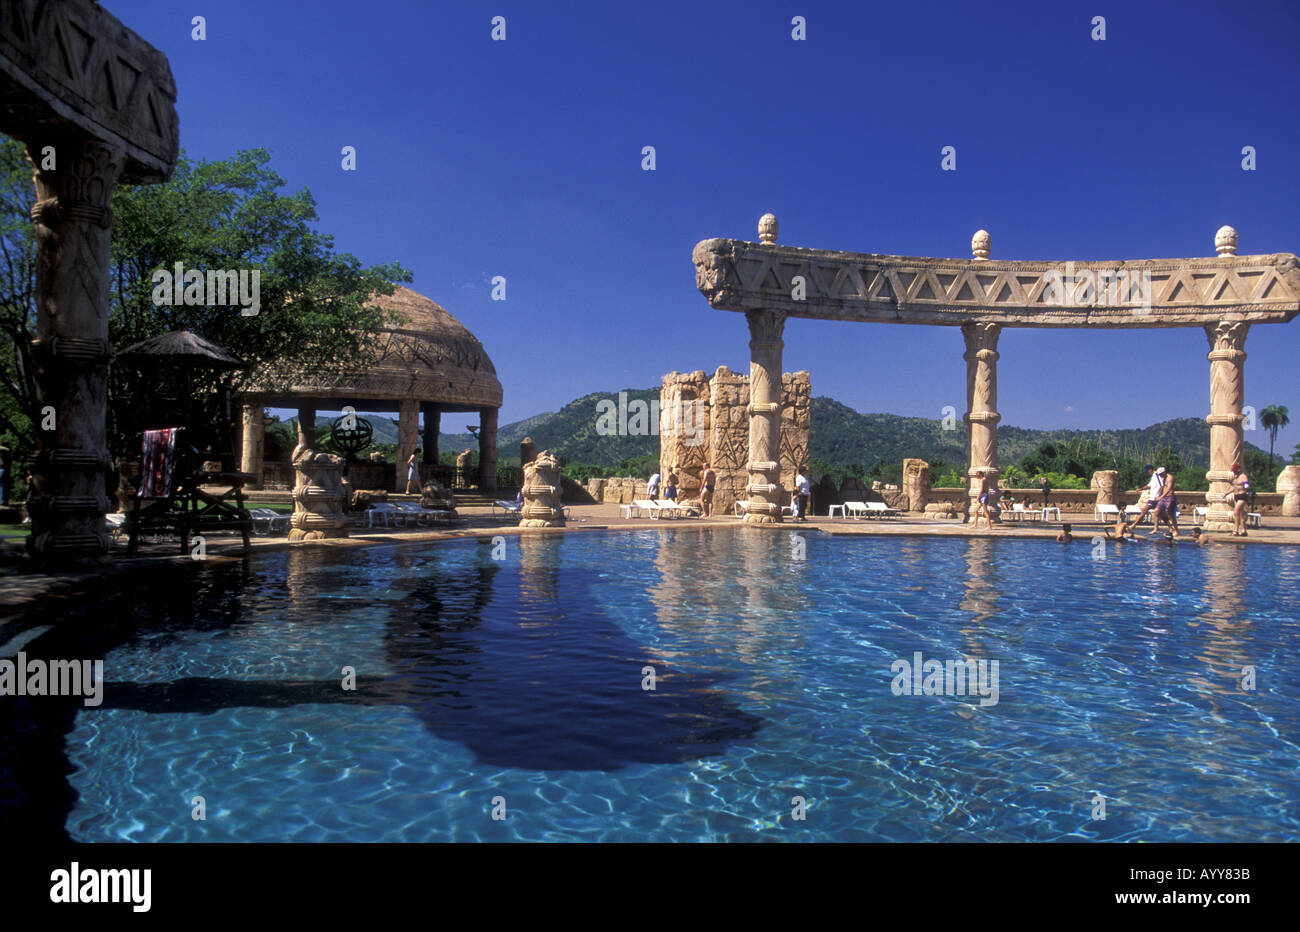 Swimming Pool At The Lost City Complex Sun City South Africa Stock Photo 3209274 Alamy